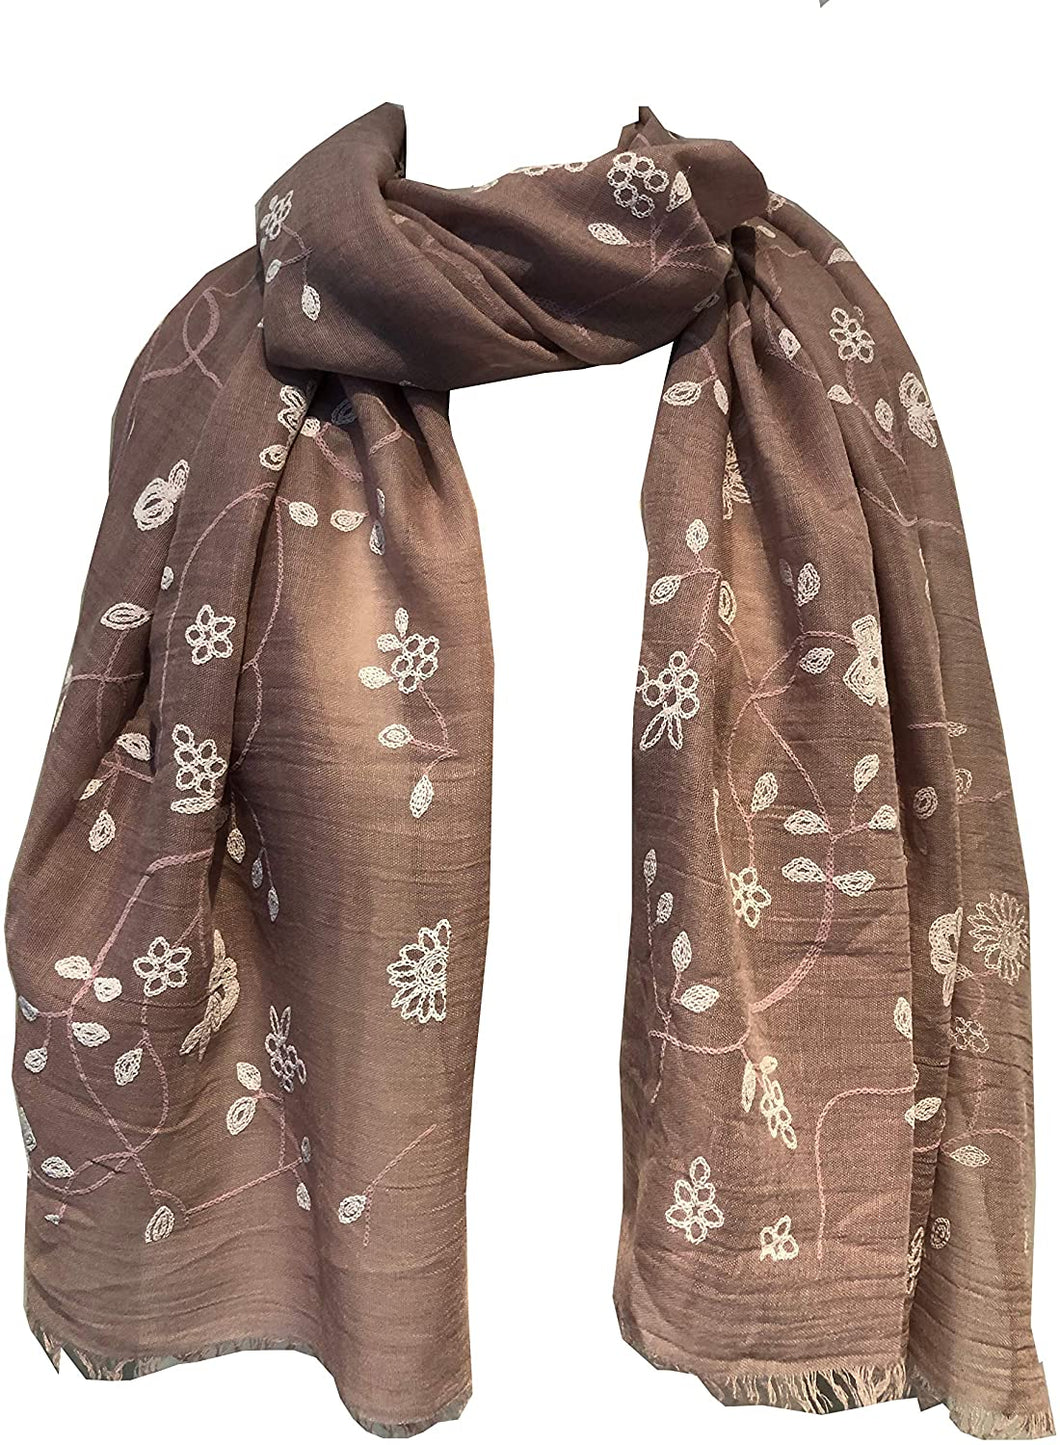 Pamper Yourself Now Pink with White Embroidered Flowers and Leaf Design Long Scarf/wrap with Frayed Edge